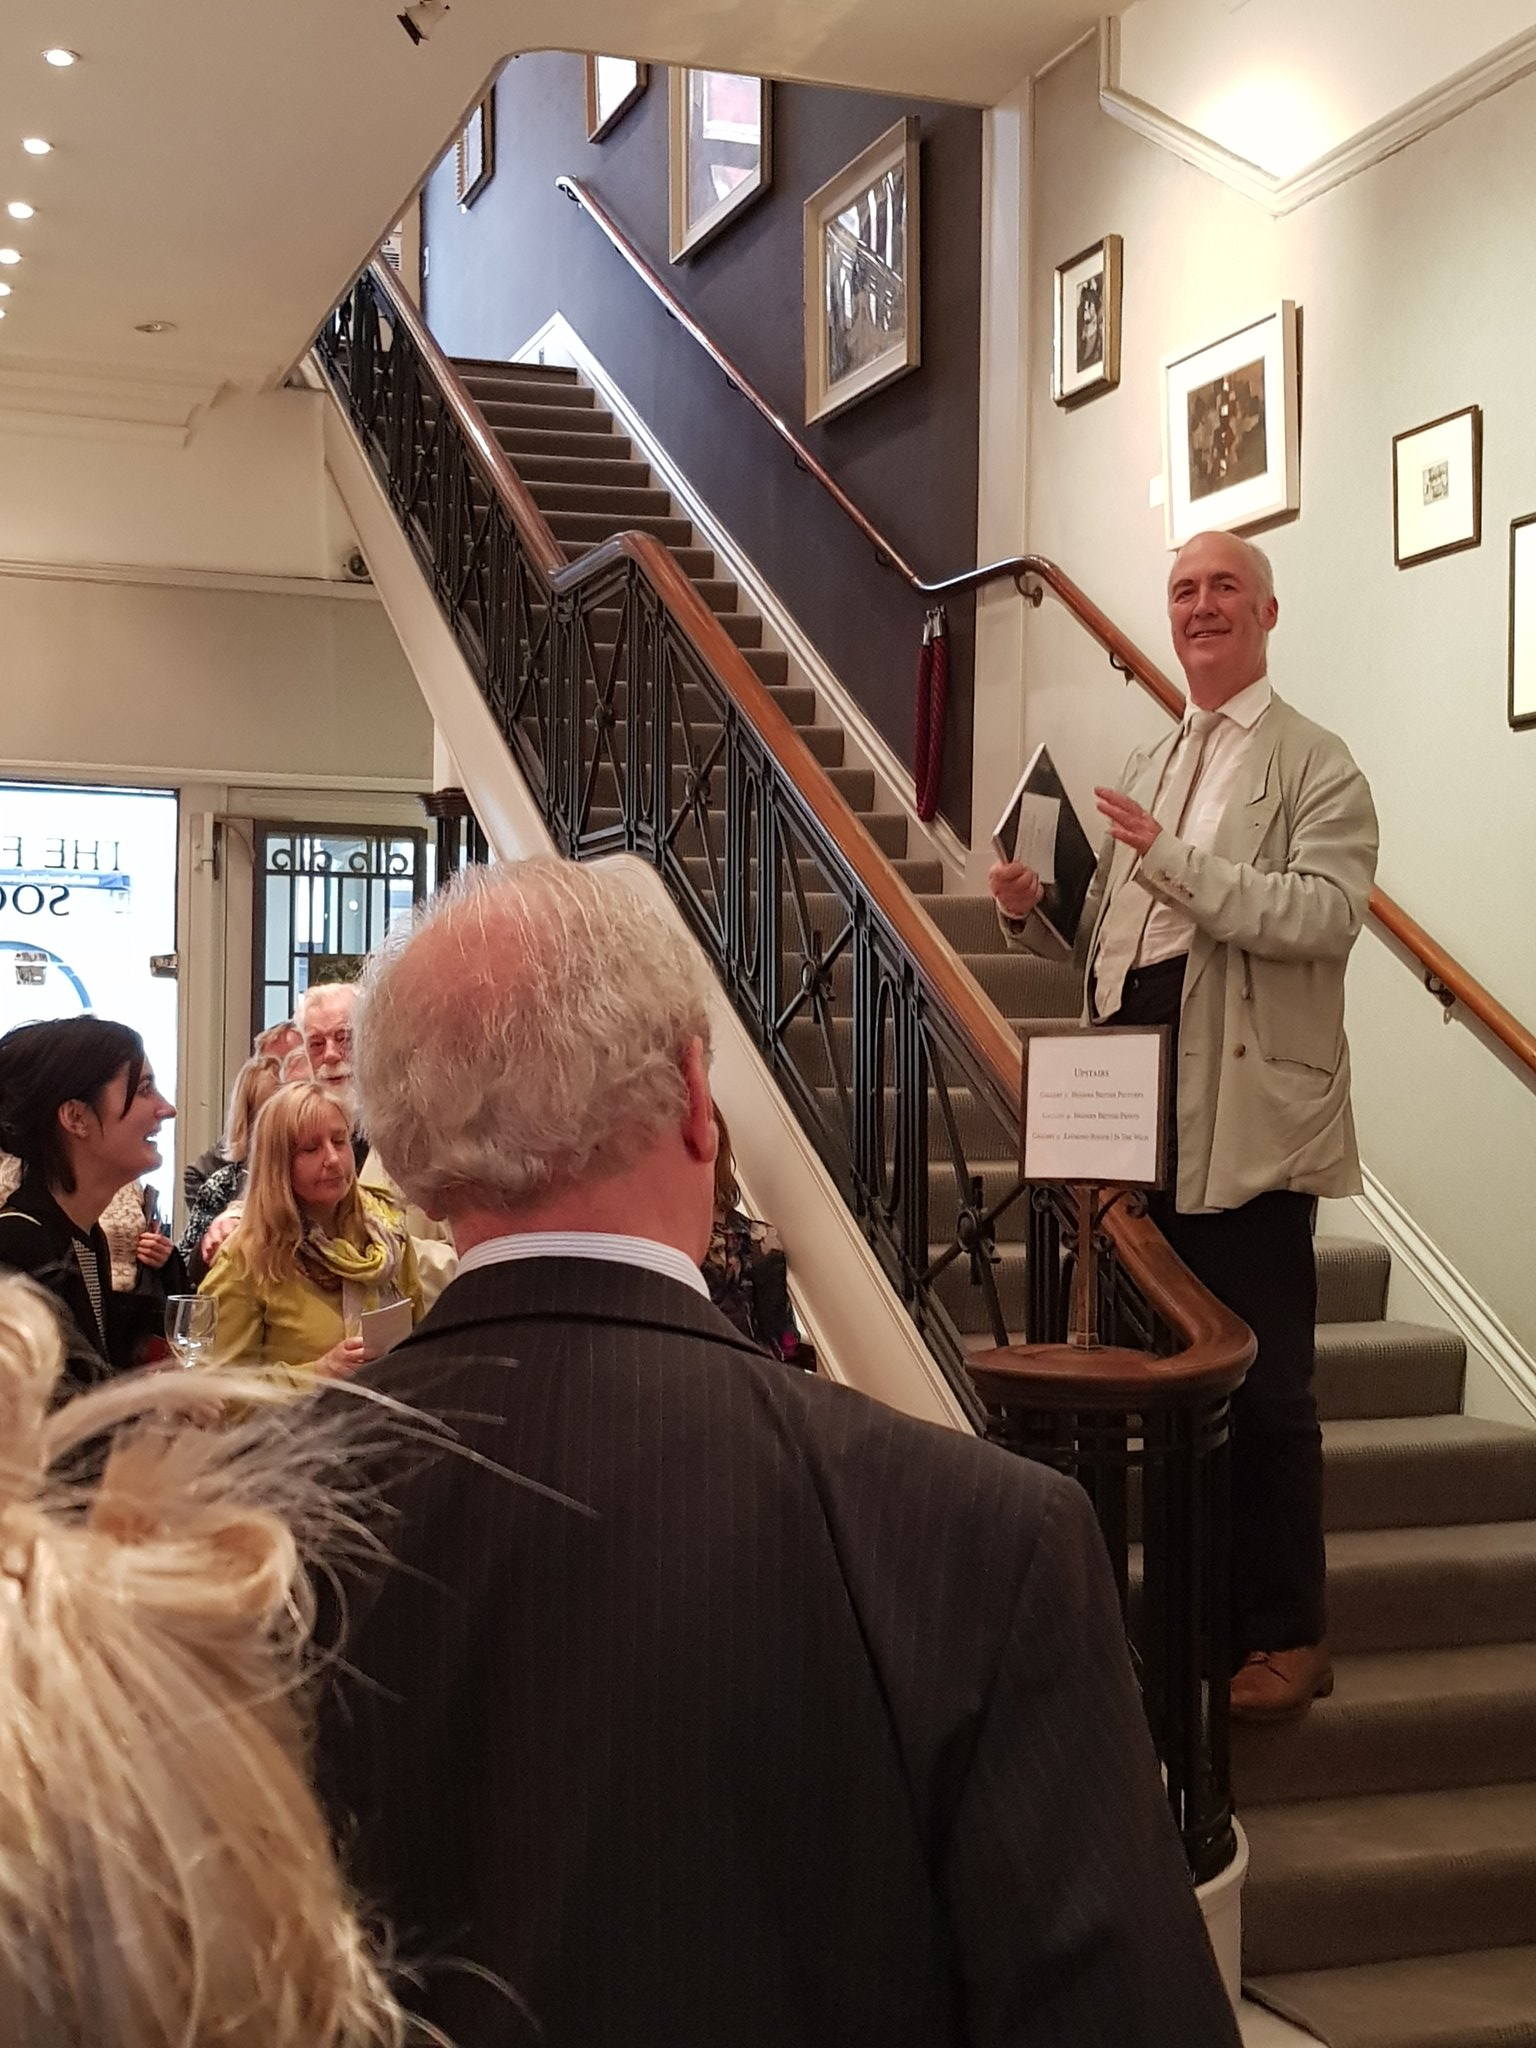 Launch of The Ten O'Clock at the Fine Art Society 13 June 2017 by Charles Saumarez Smith